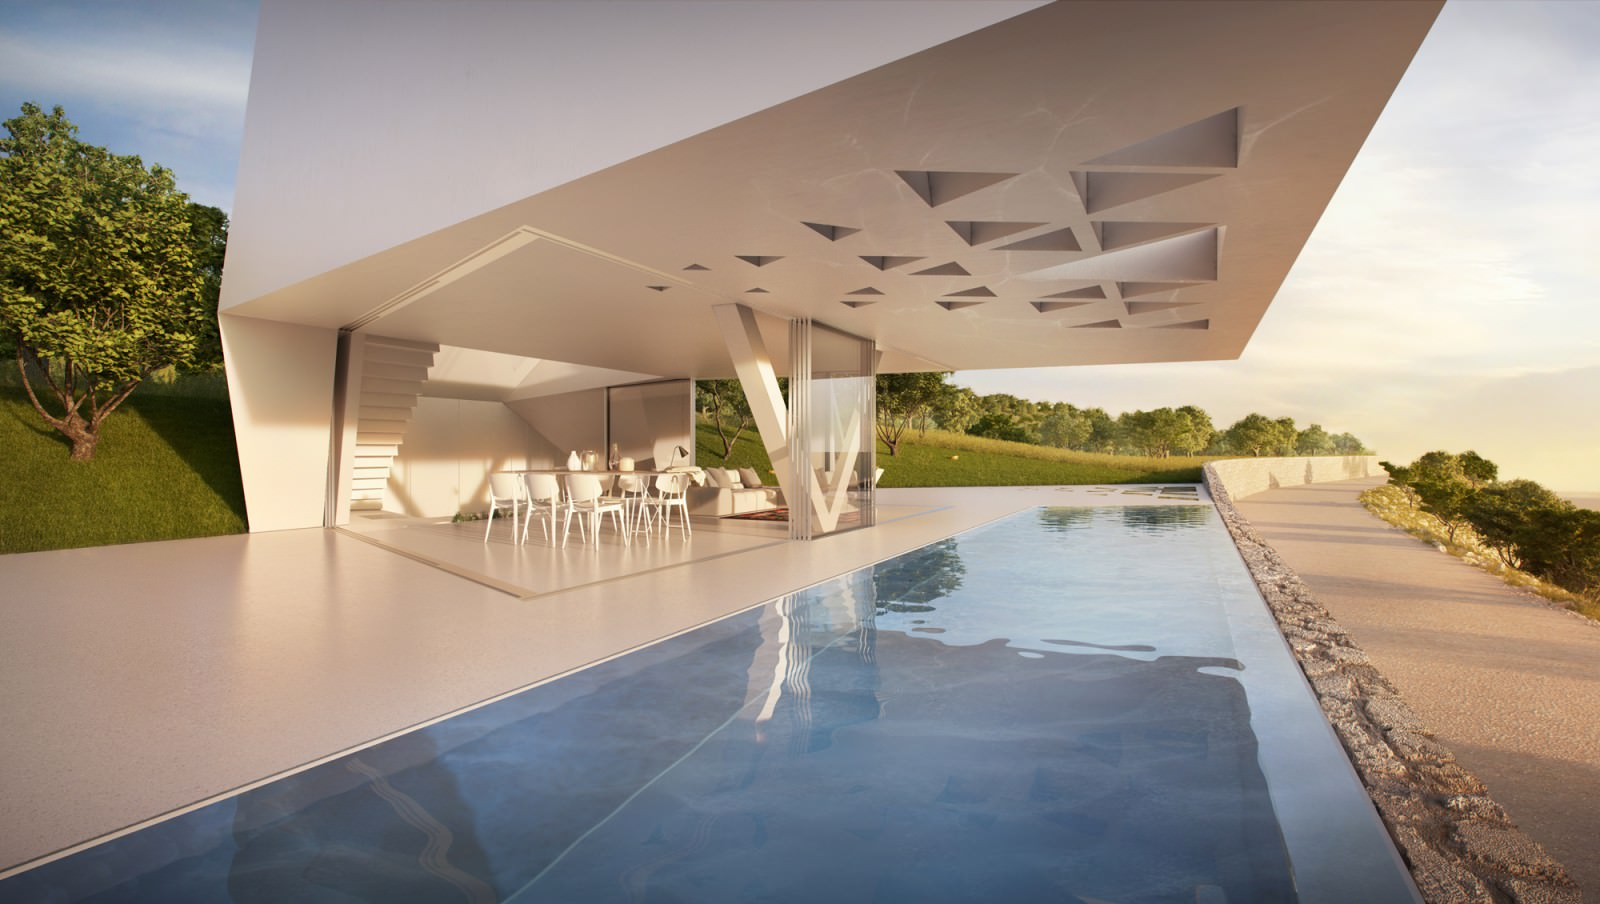 HORNUNG-AND-JACOBI-ARCHITECTURE_VILLA-F_05-1600x904